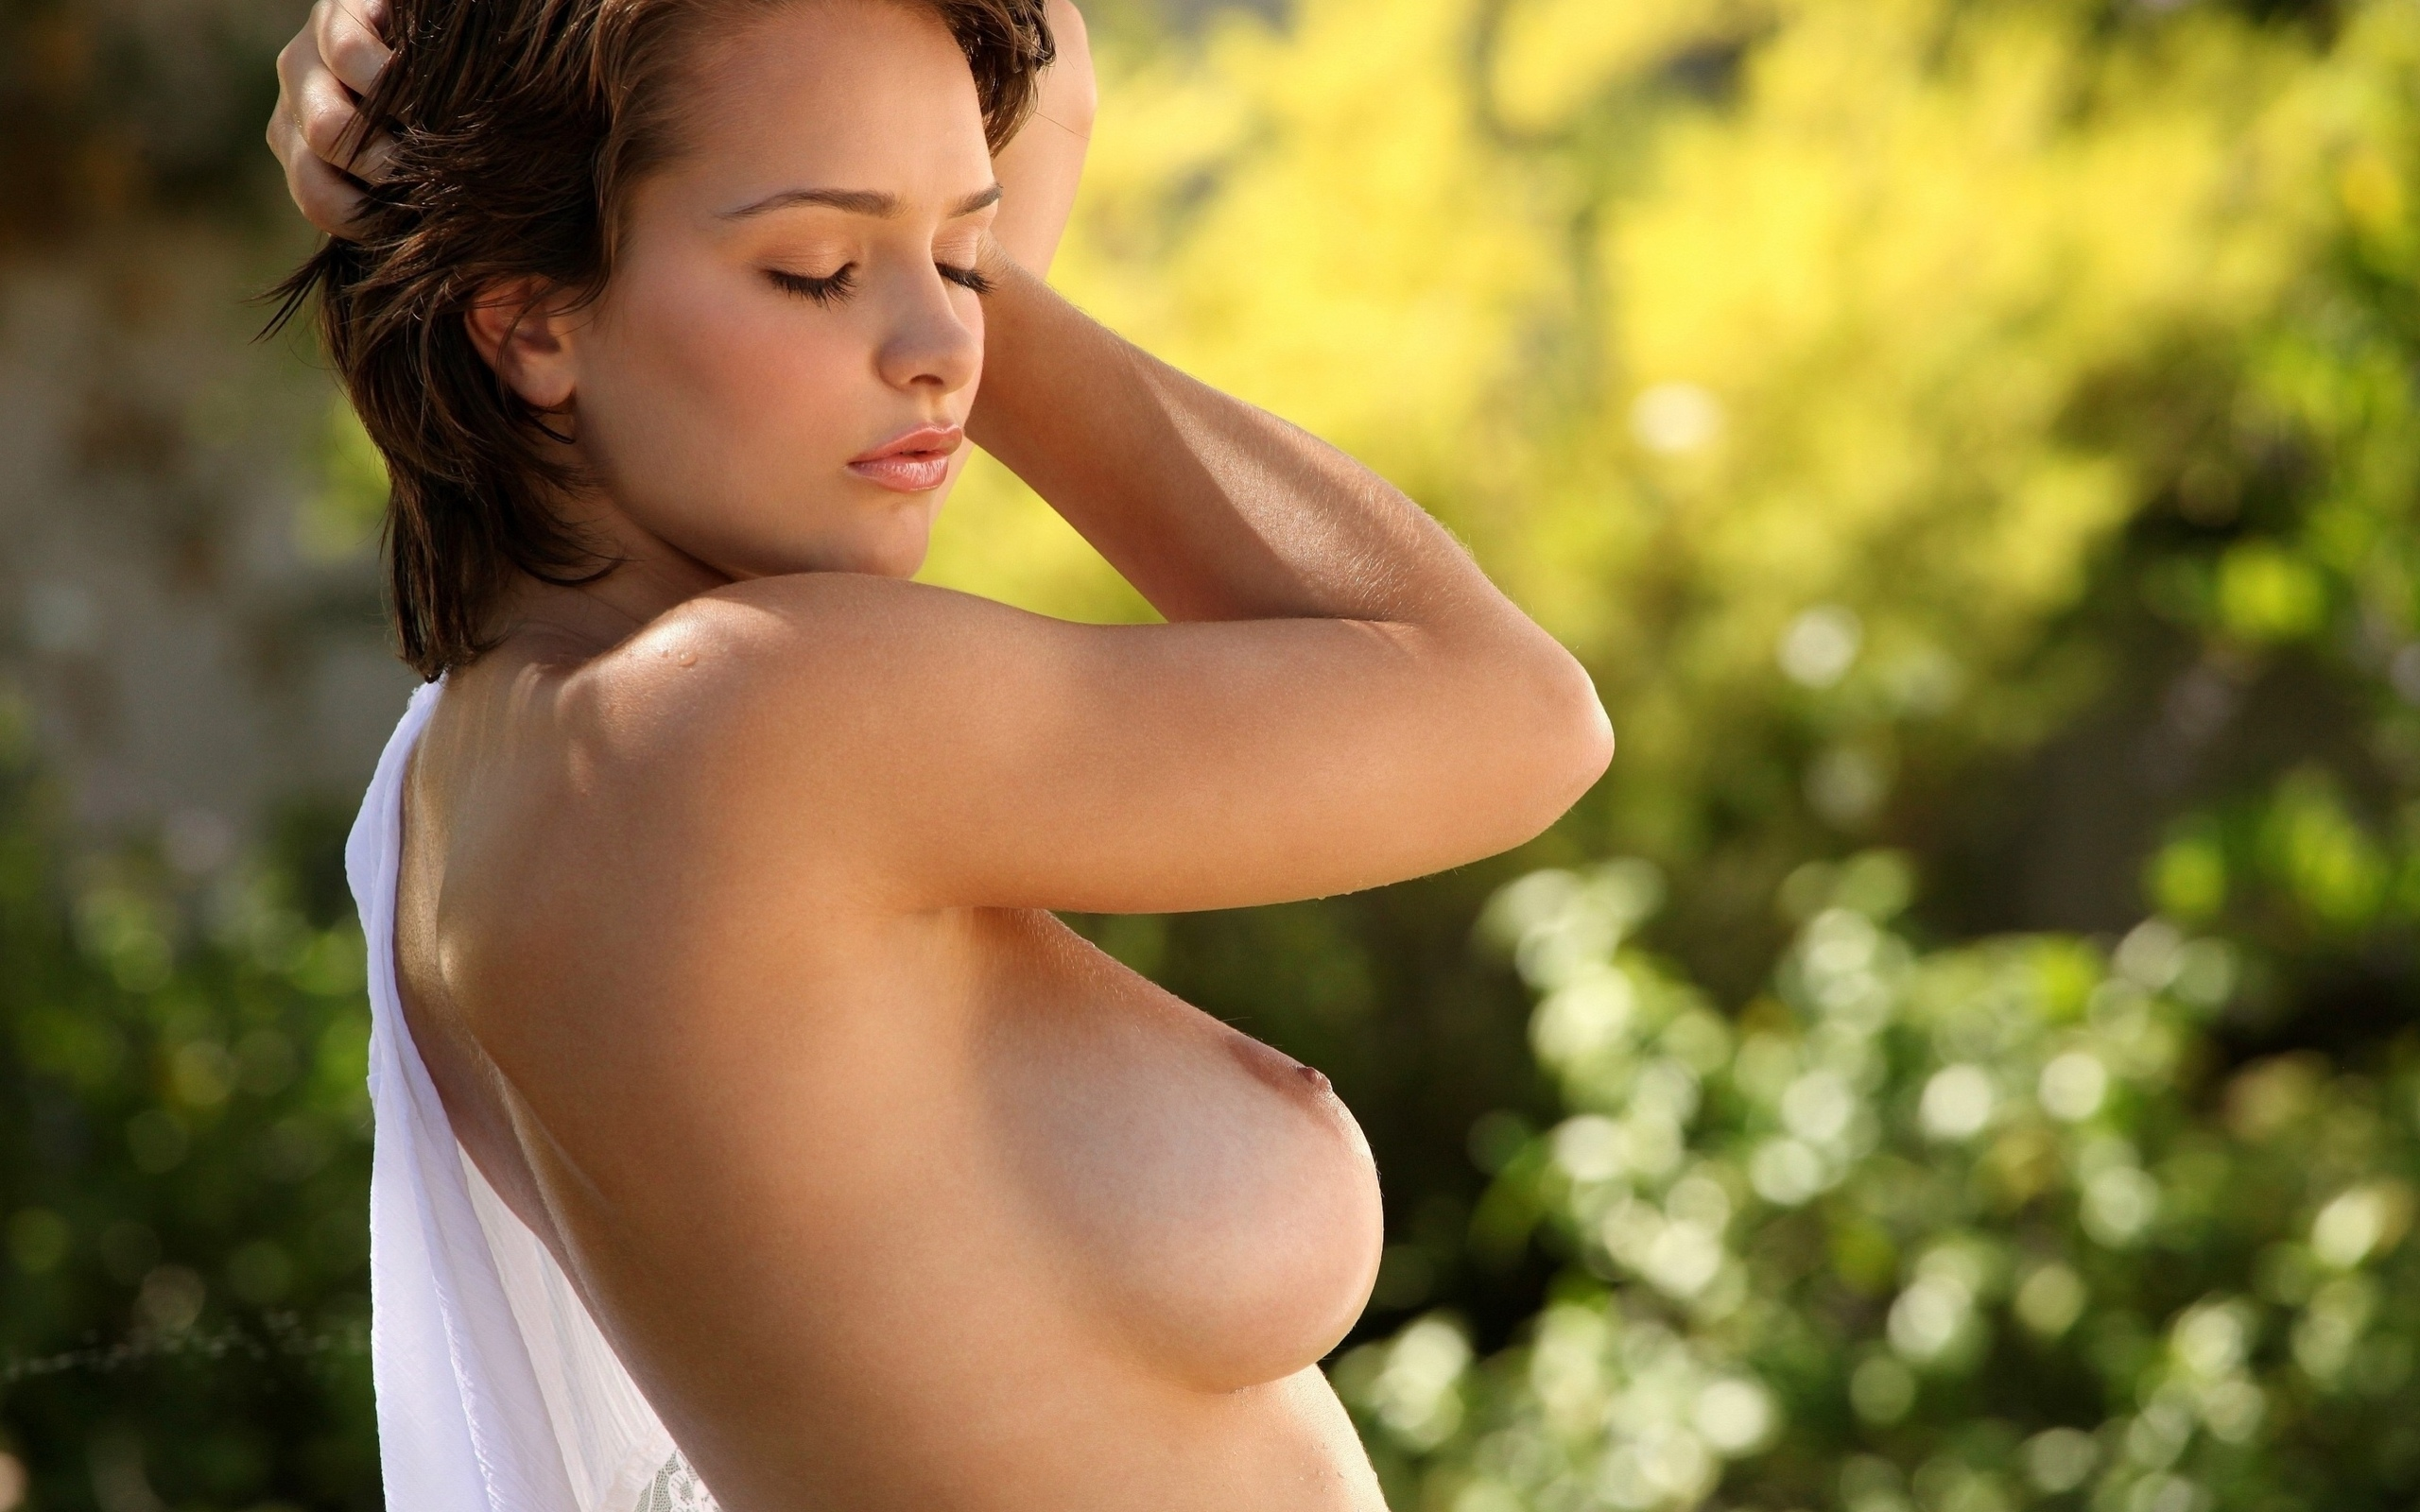 natural-boob-girls